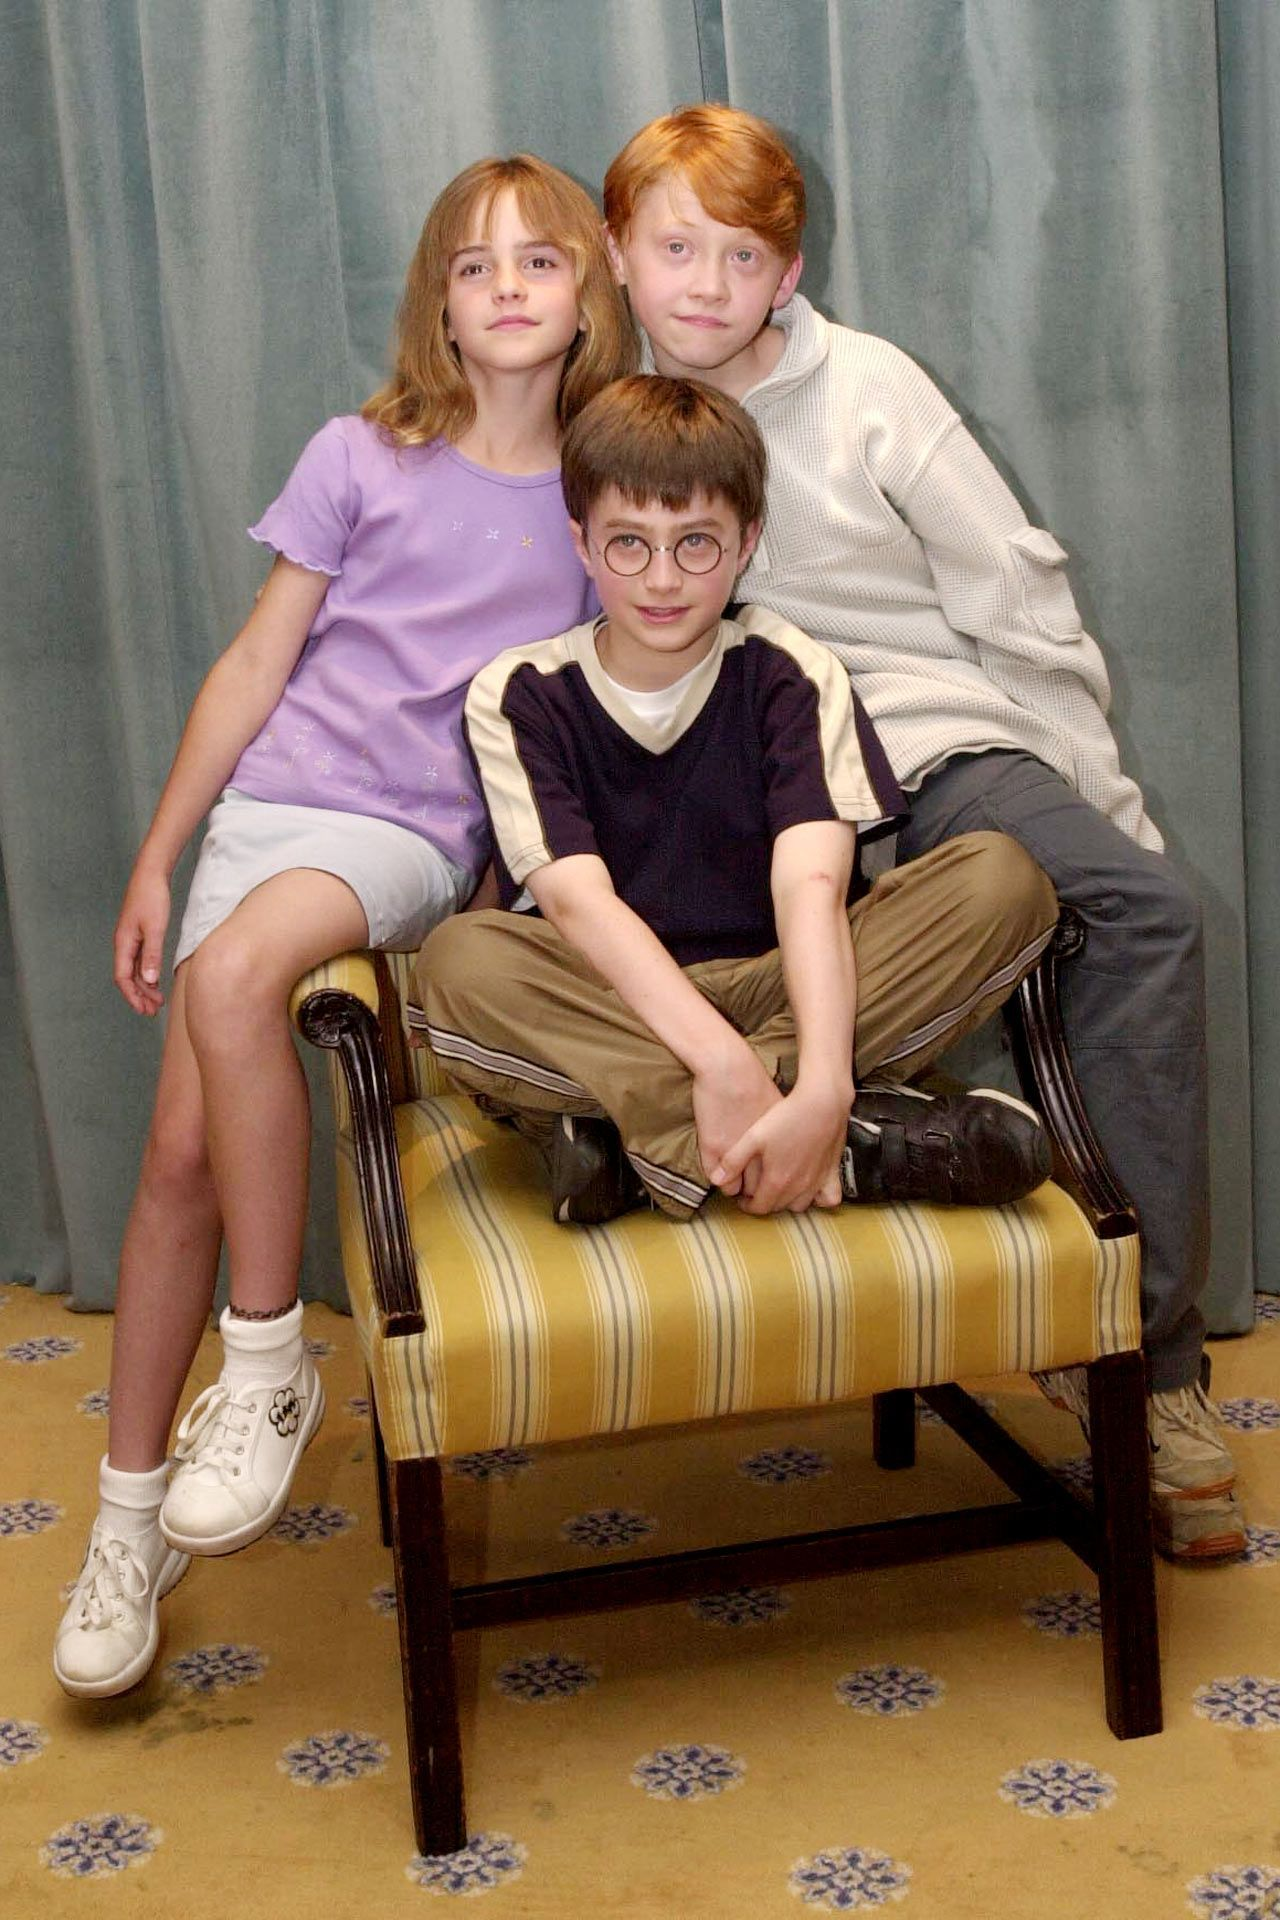 August 2000 Emma was launched into the public eye with Daniel Radcliffe and Rupert Grint as the stars of Harry Potter and the Philosopher's Stone. i love this picture!!!!!!!!! #actors #young #actors